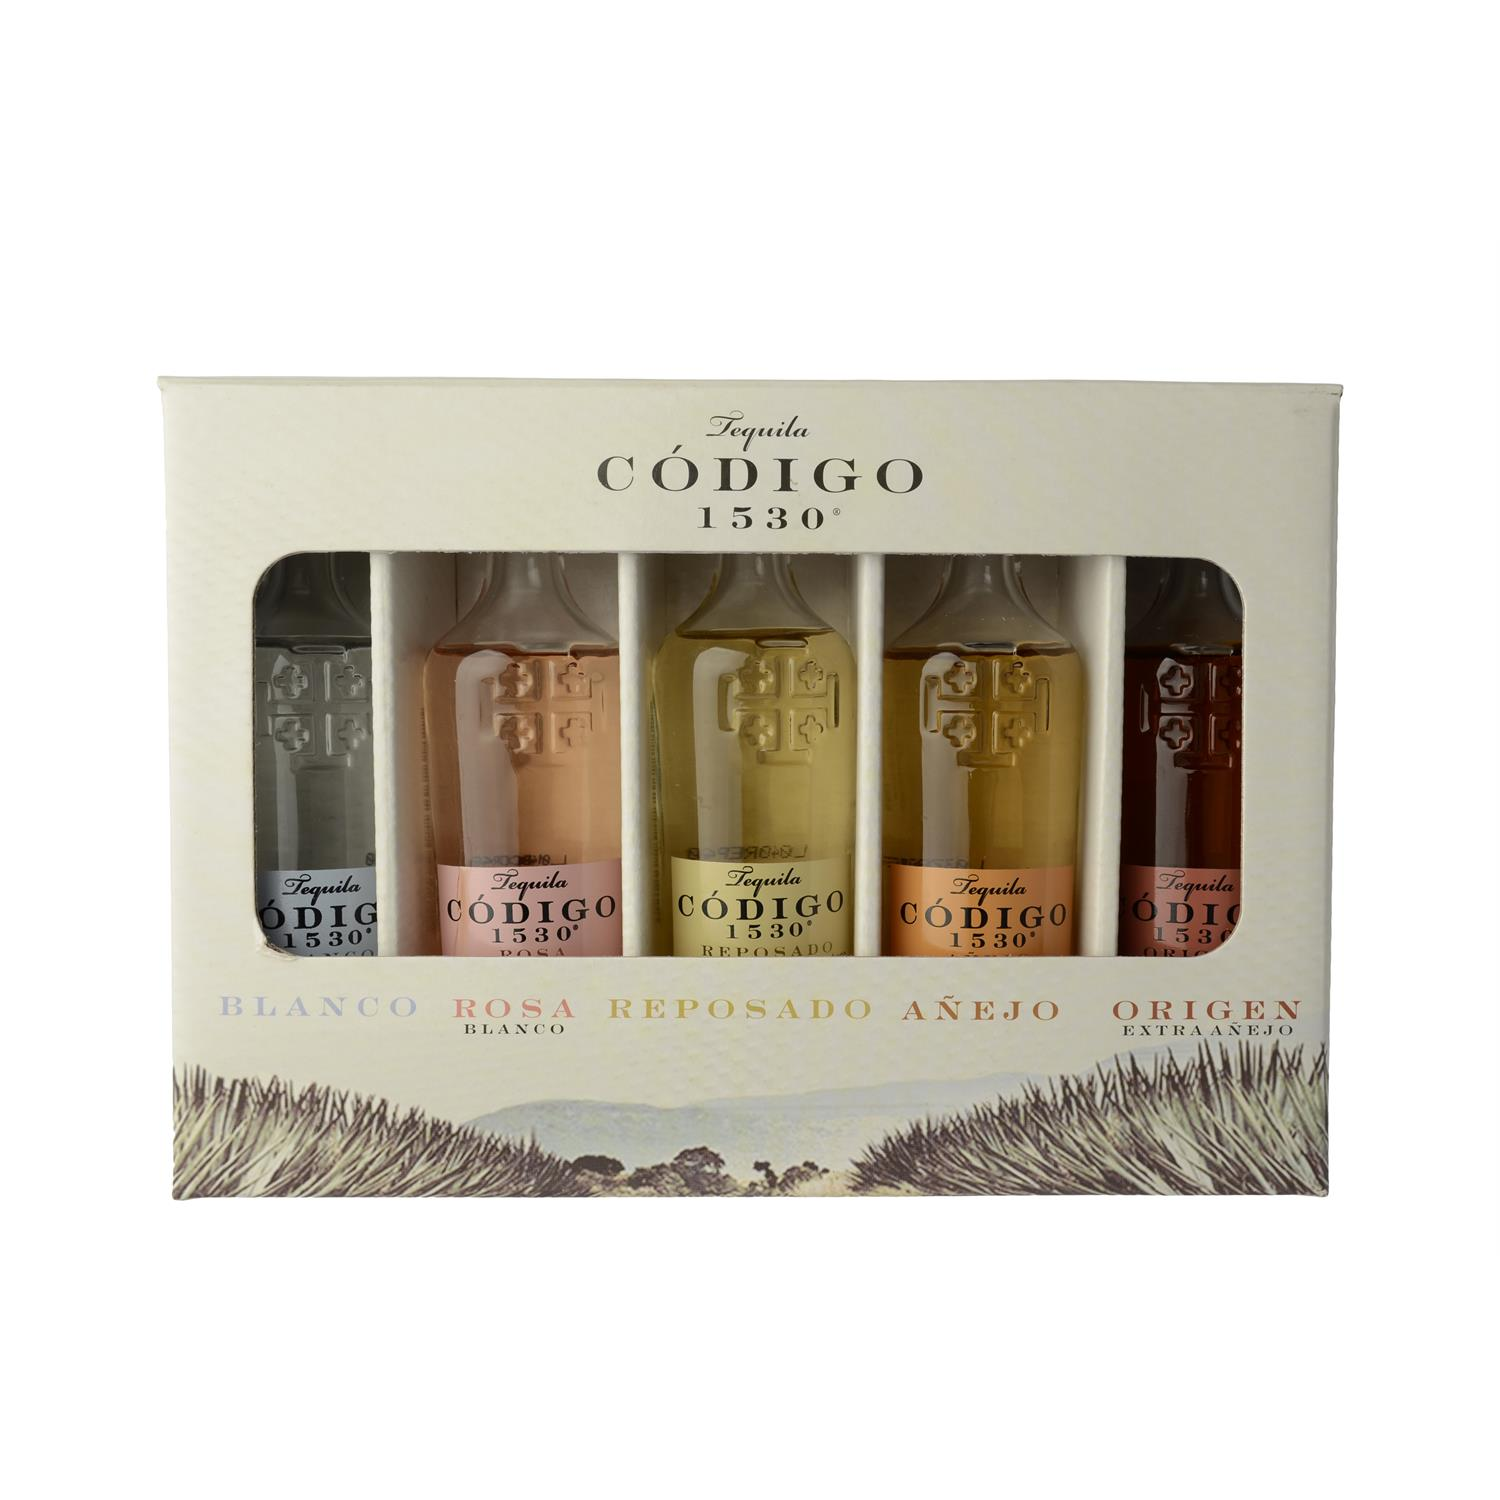 Codigo Tequila 1530 Miniatures 5x50ml  25 cl